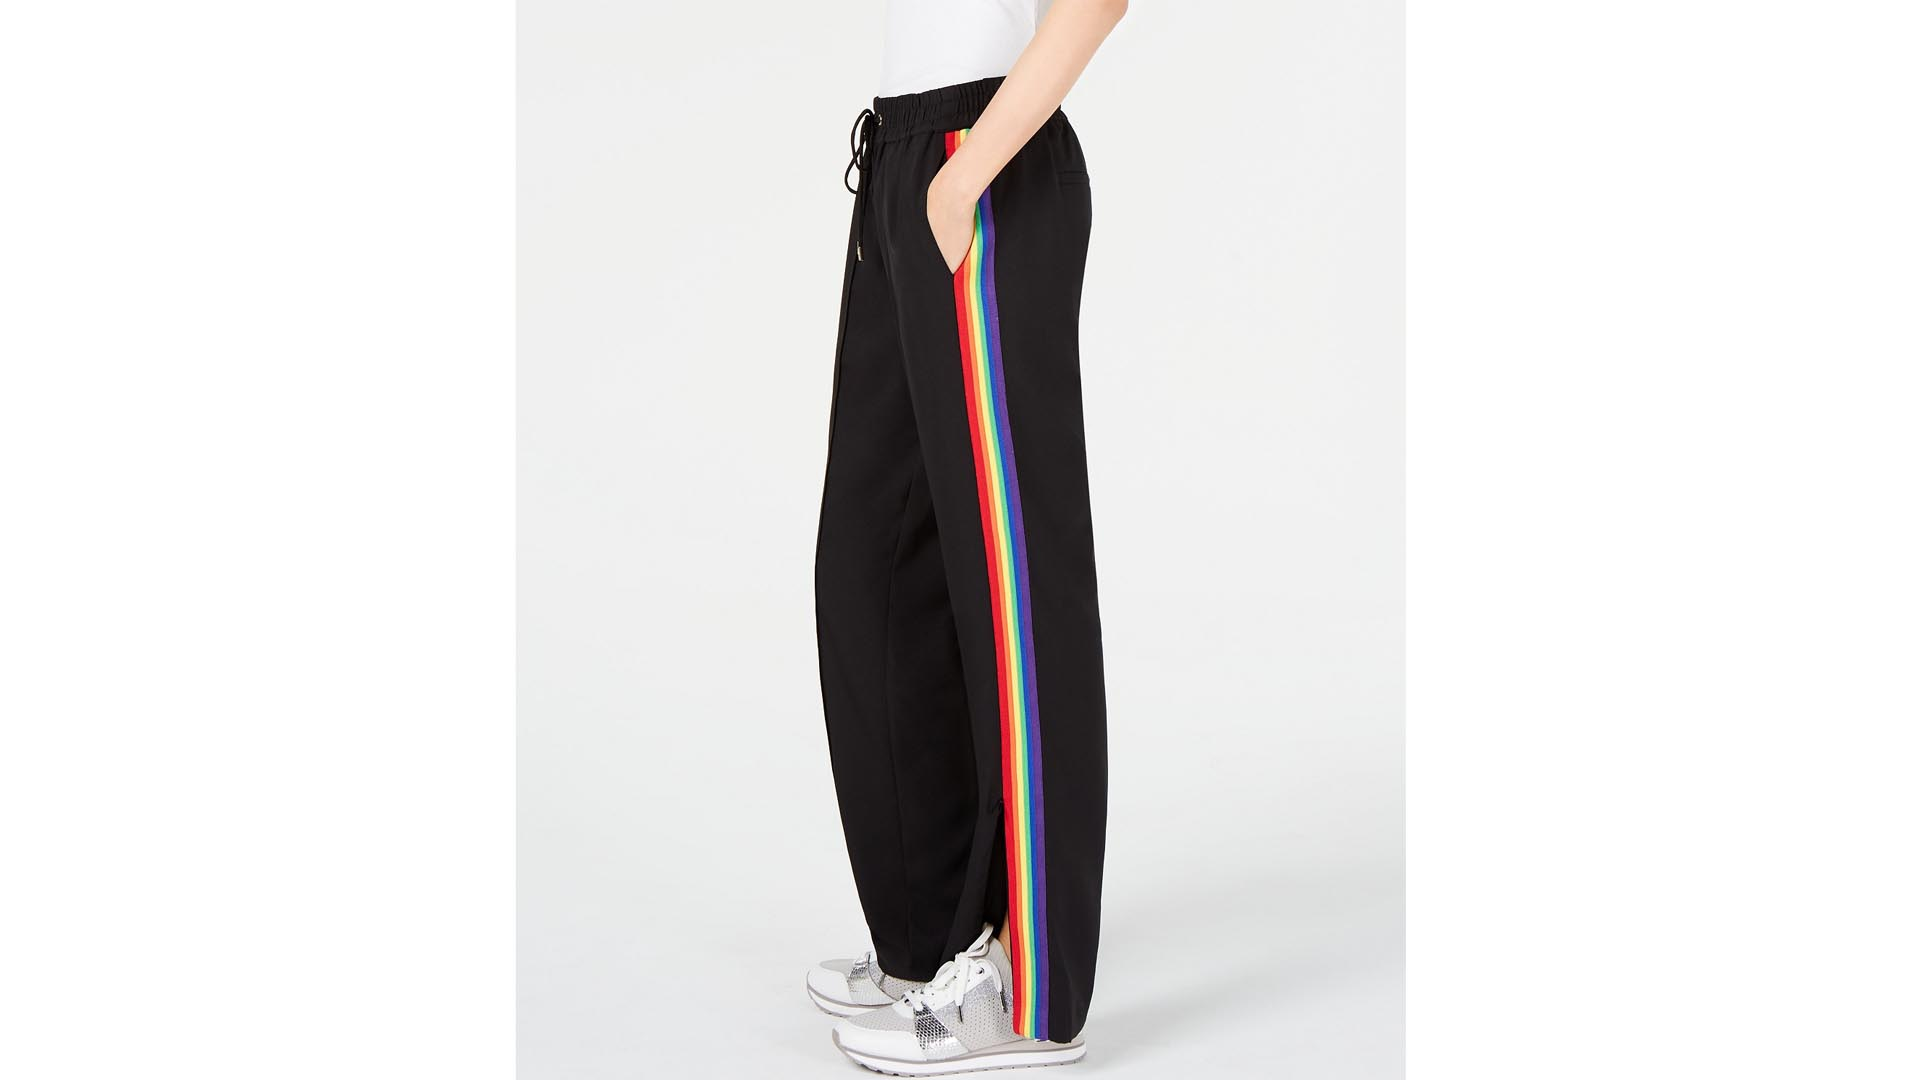 dress-up-with-pride-michael-kors-rainbow-track-pants